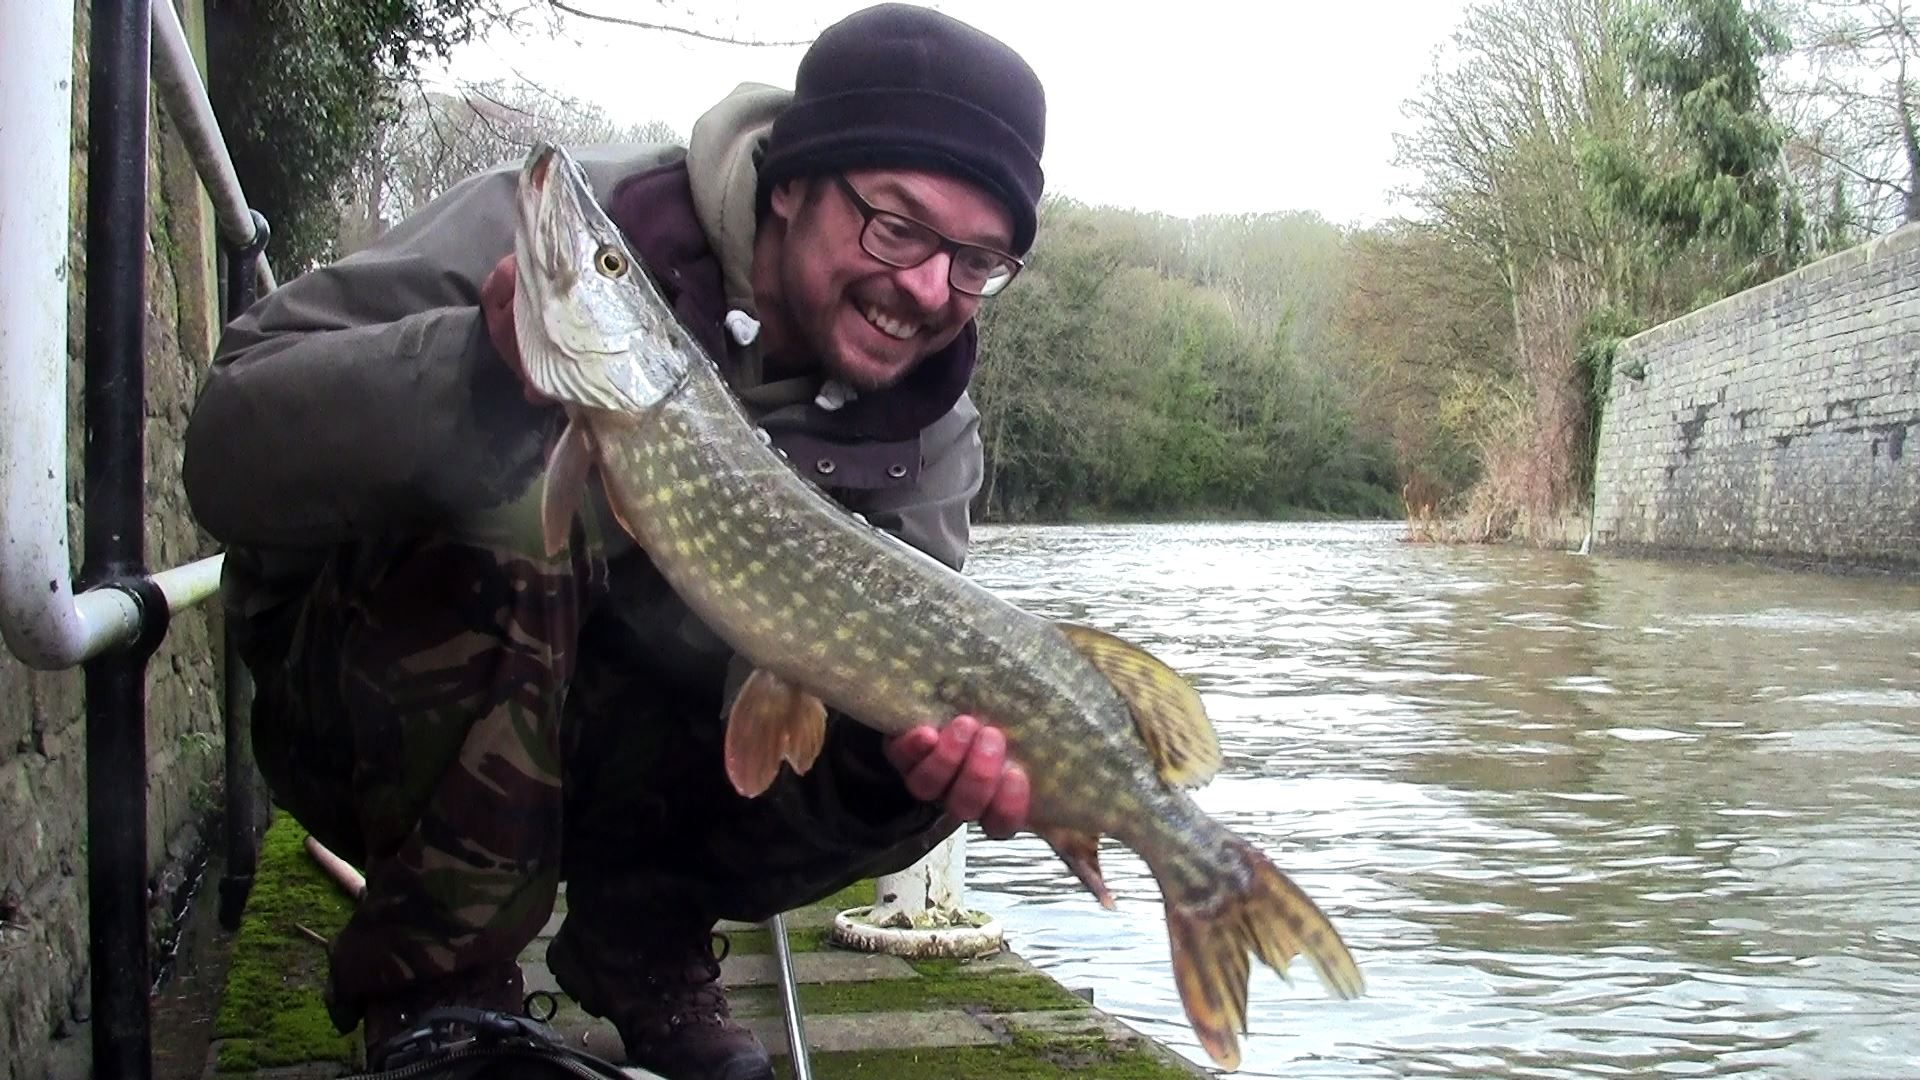 Pike caught from Weston Lock on the River Avon